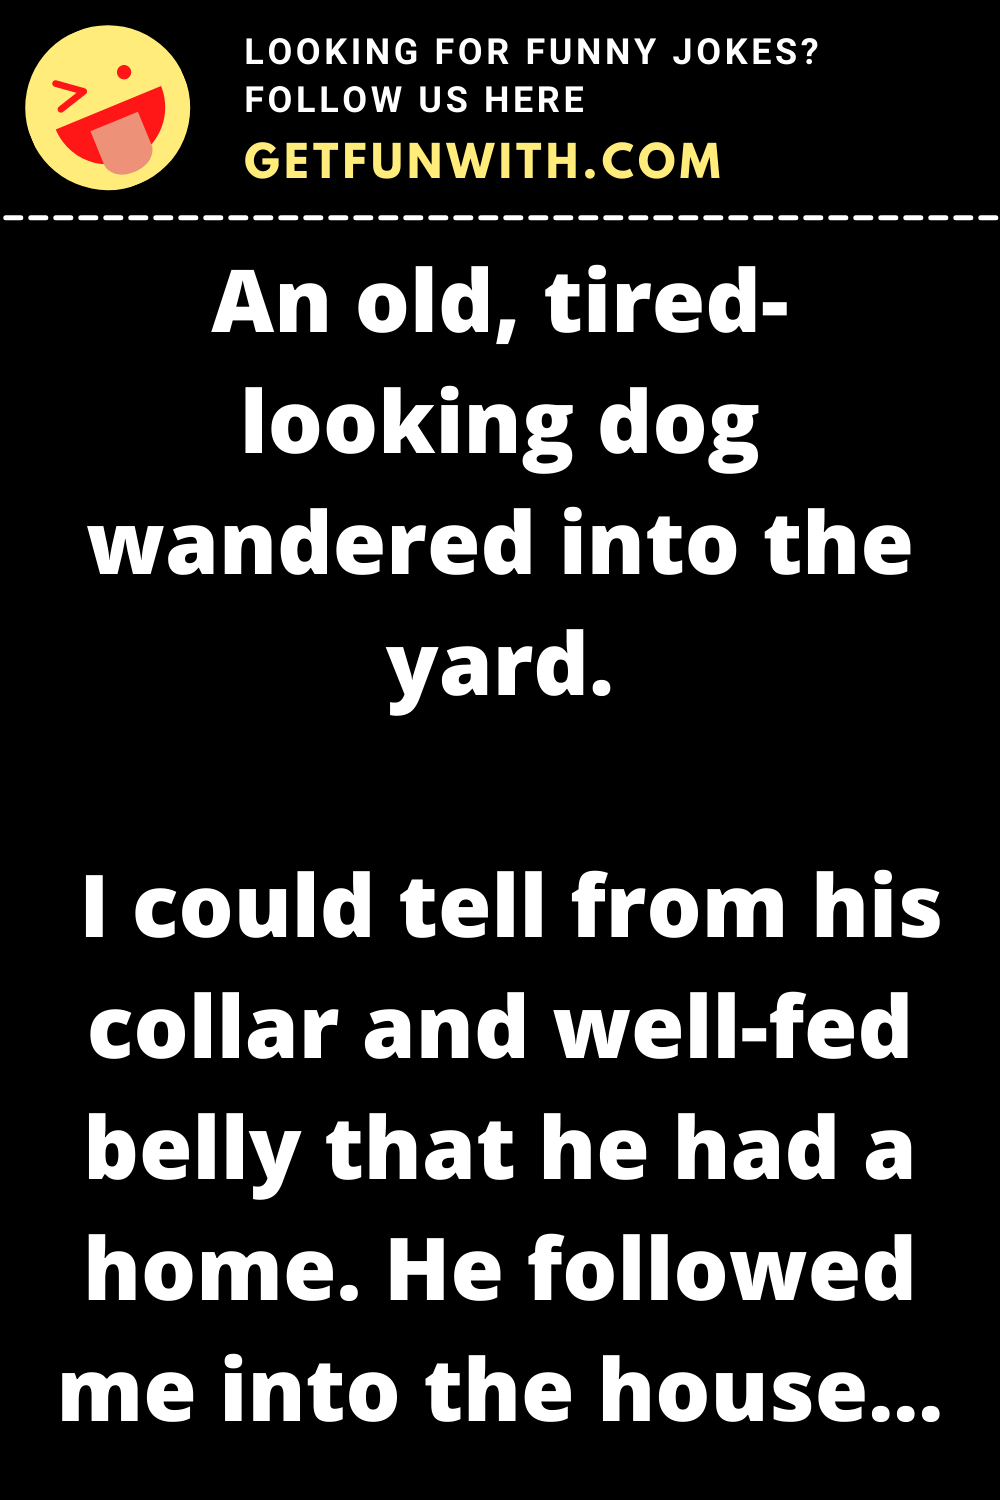 An old, tired-looking dog wandered into the yard